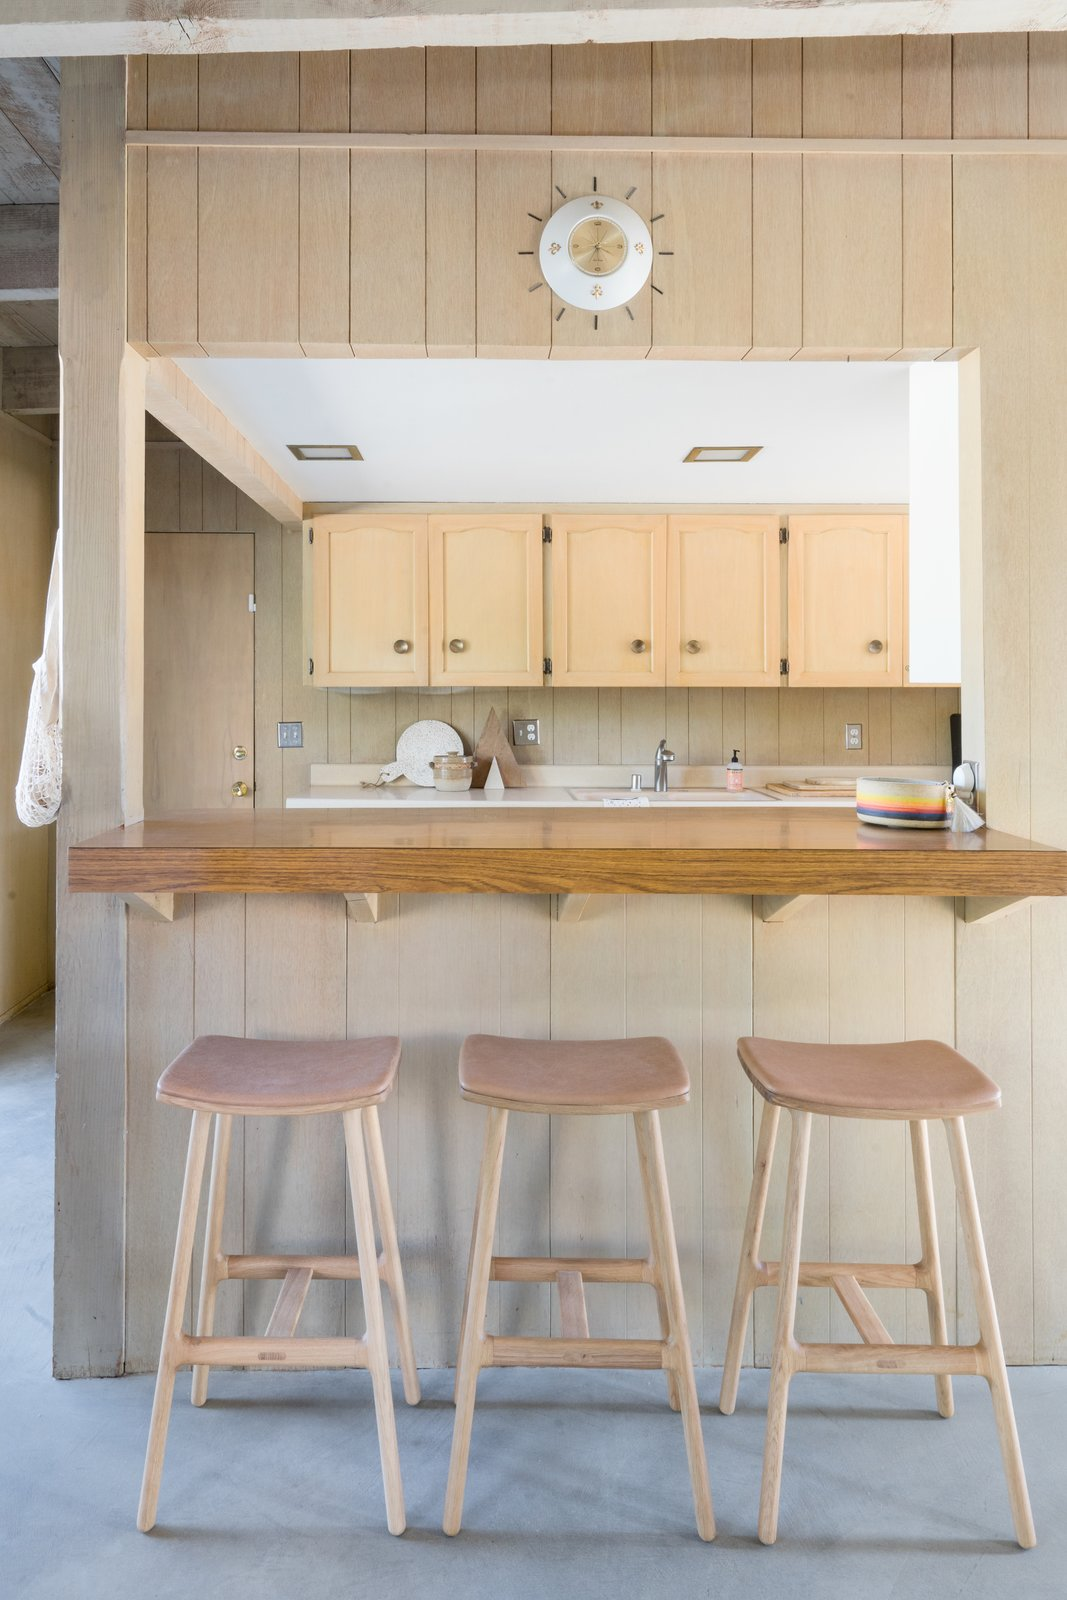 Borrego Springs midcentury renovation The Grove Collective kitchen